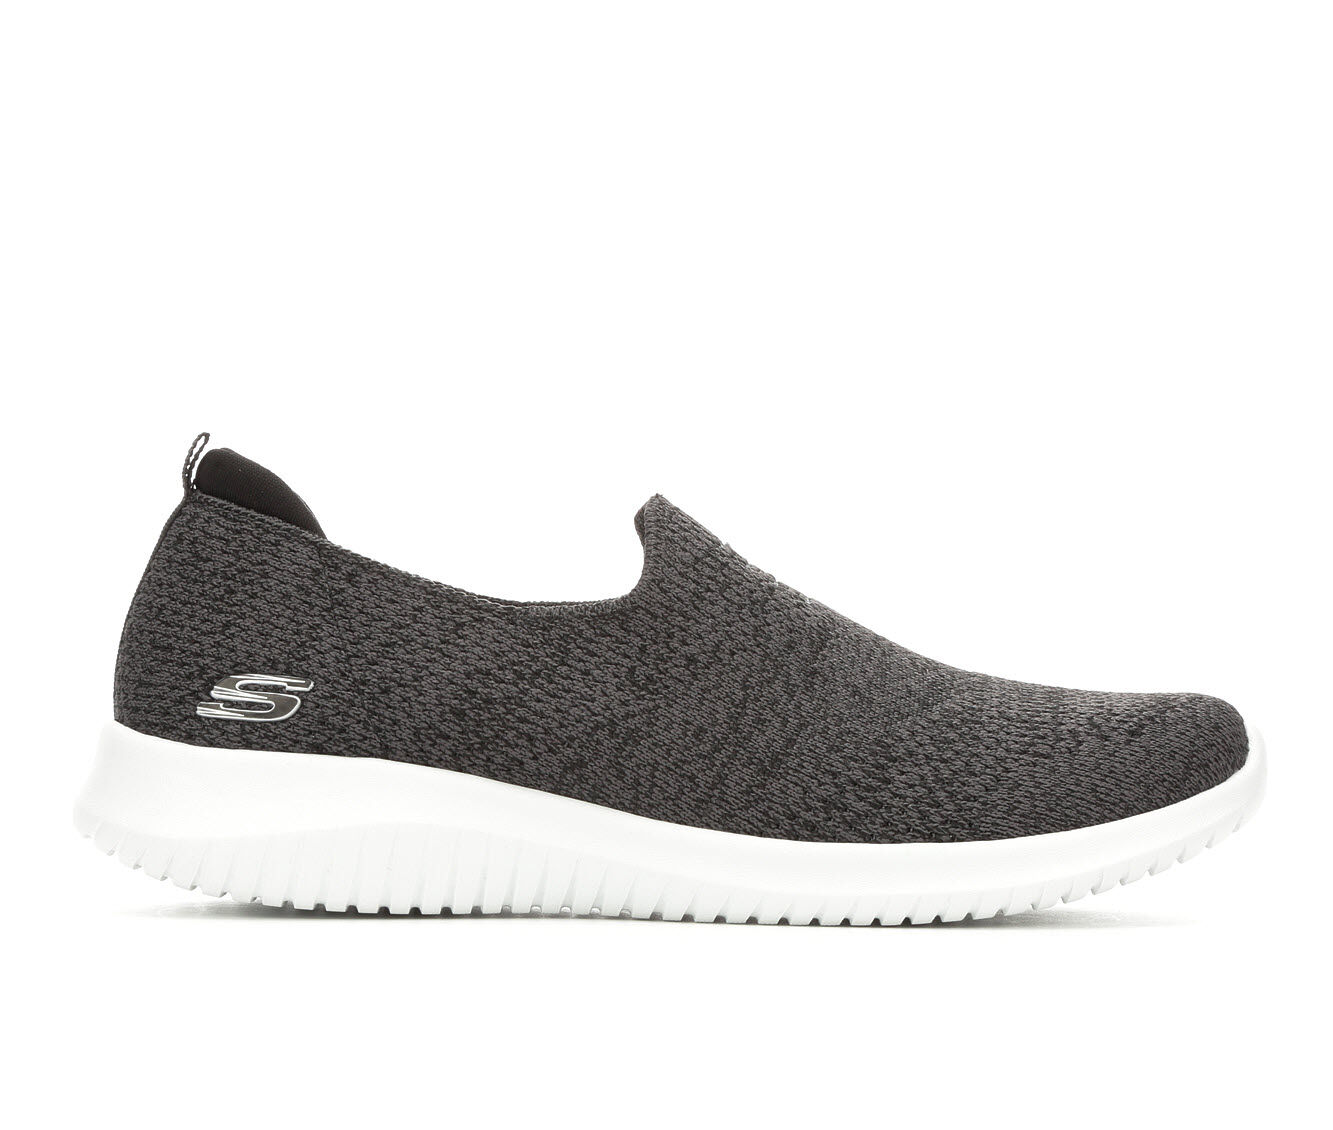 Women's Skechers Harmonious 13106 Sneakers Black/White